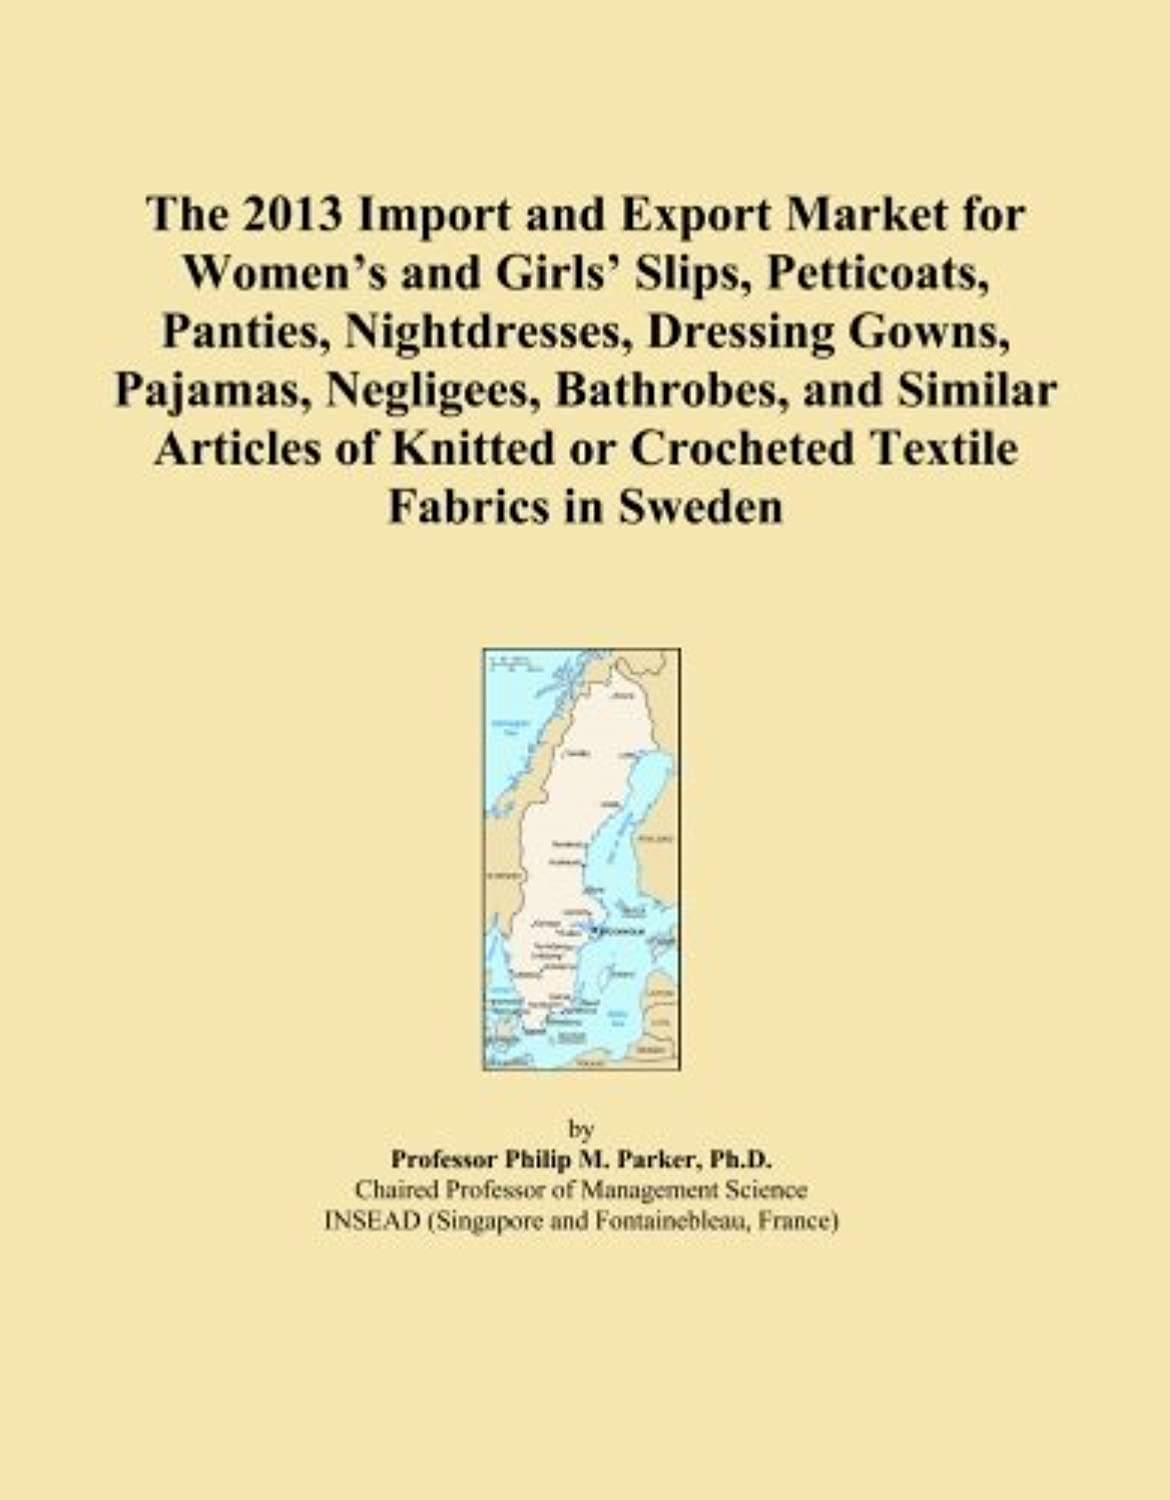 The 2013 Import and Export Market for Women's and Girls' Slips, Petticoats, Panties, Nightdresses, Dressing Gowns, Pajamas, Negligees, Bathrobes, and Similar Articles of Knitted or Crocheted Textile Fabrics in Sweden